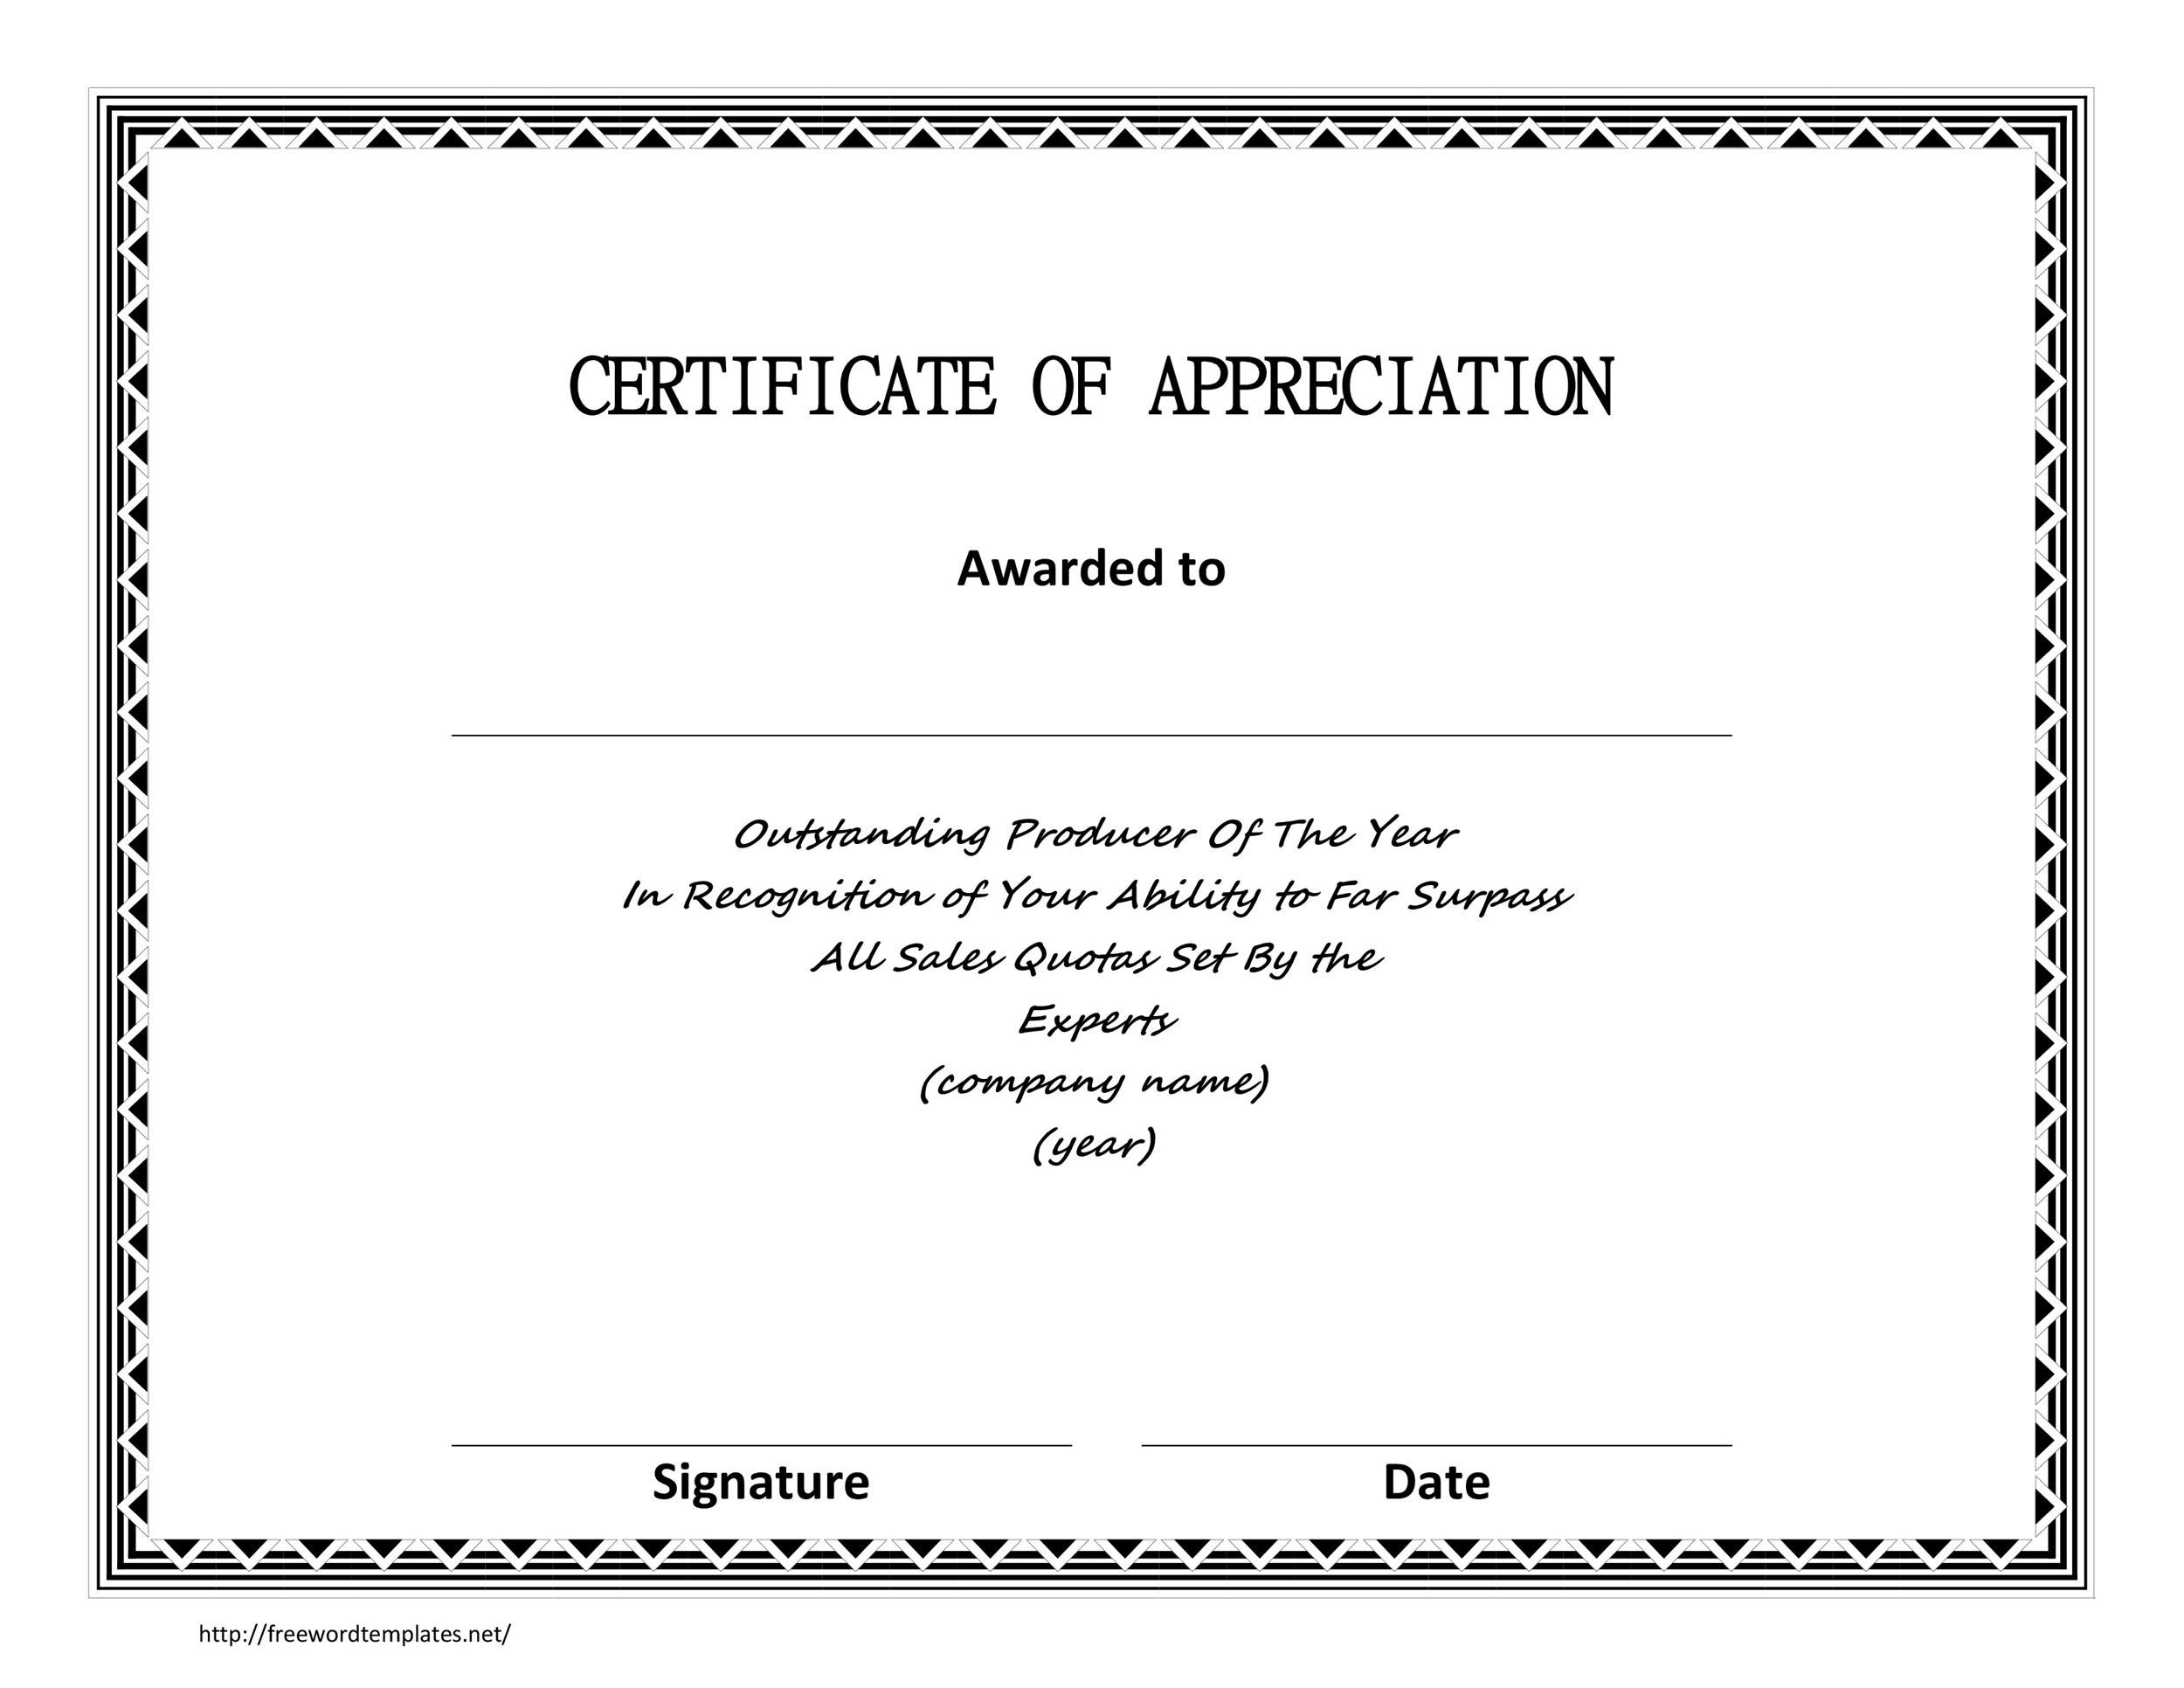 30 free certificate of appreciation templates and letters printable certificate of appreciation 06 pronofoot35fo Choice Image